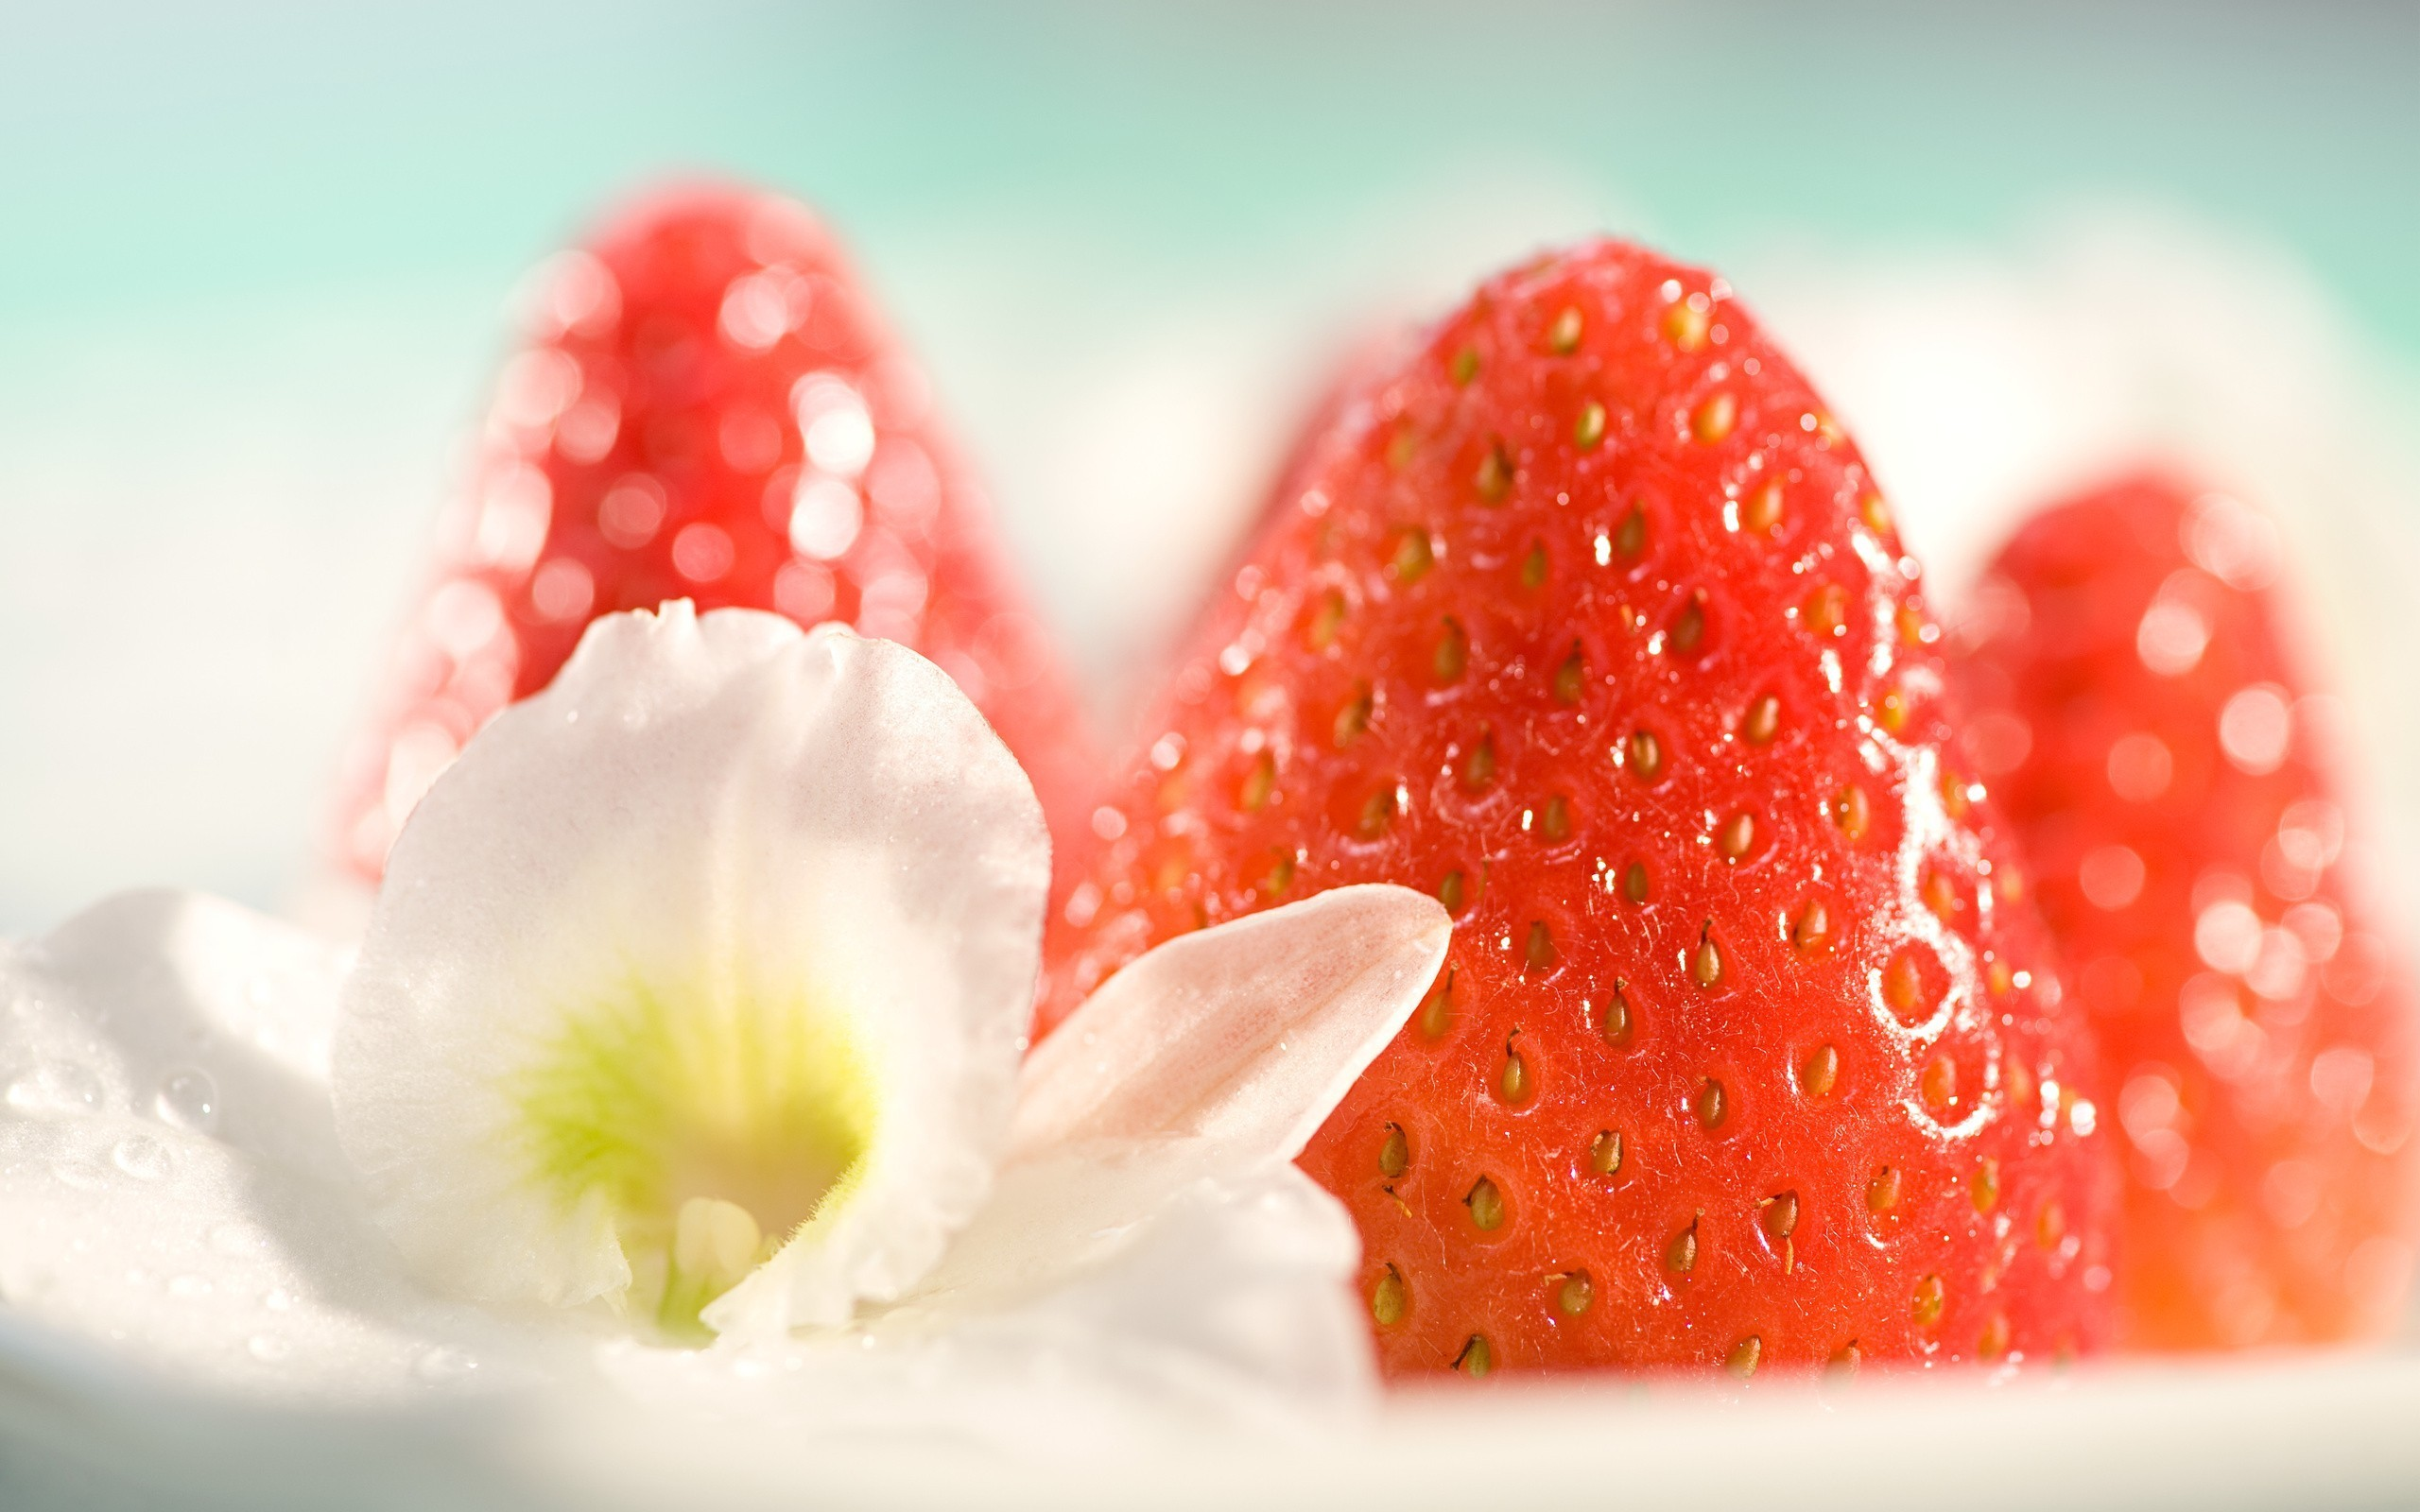 2560x1600 photography macro fruit food flowers strawberries wallpaper and background